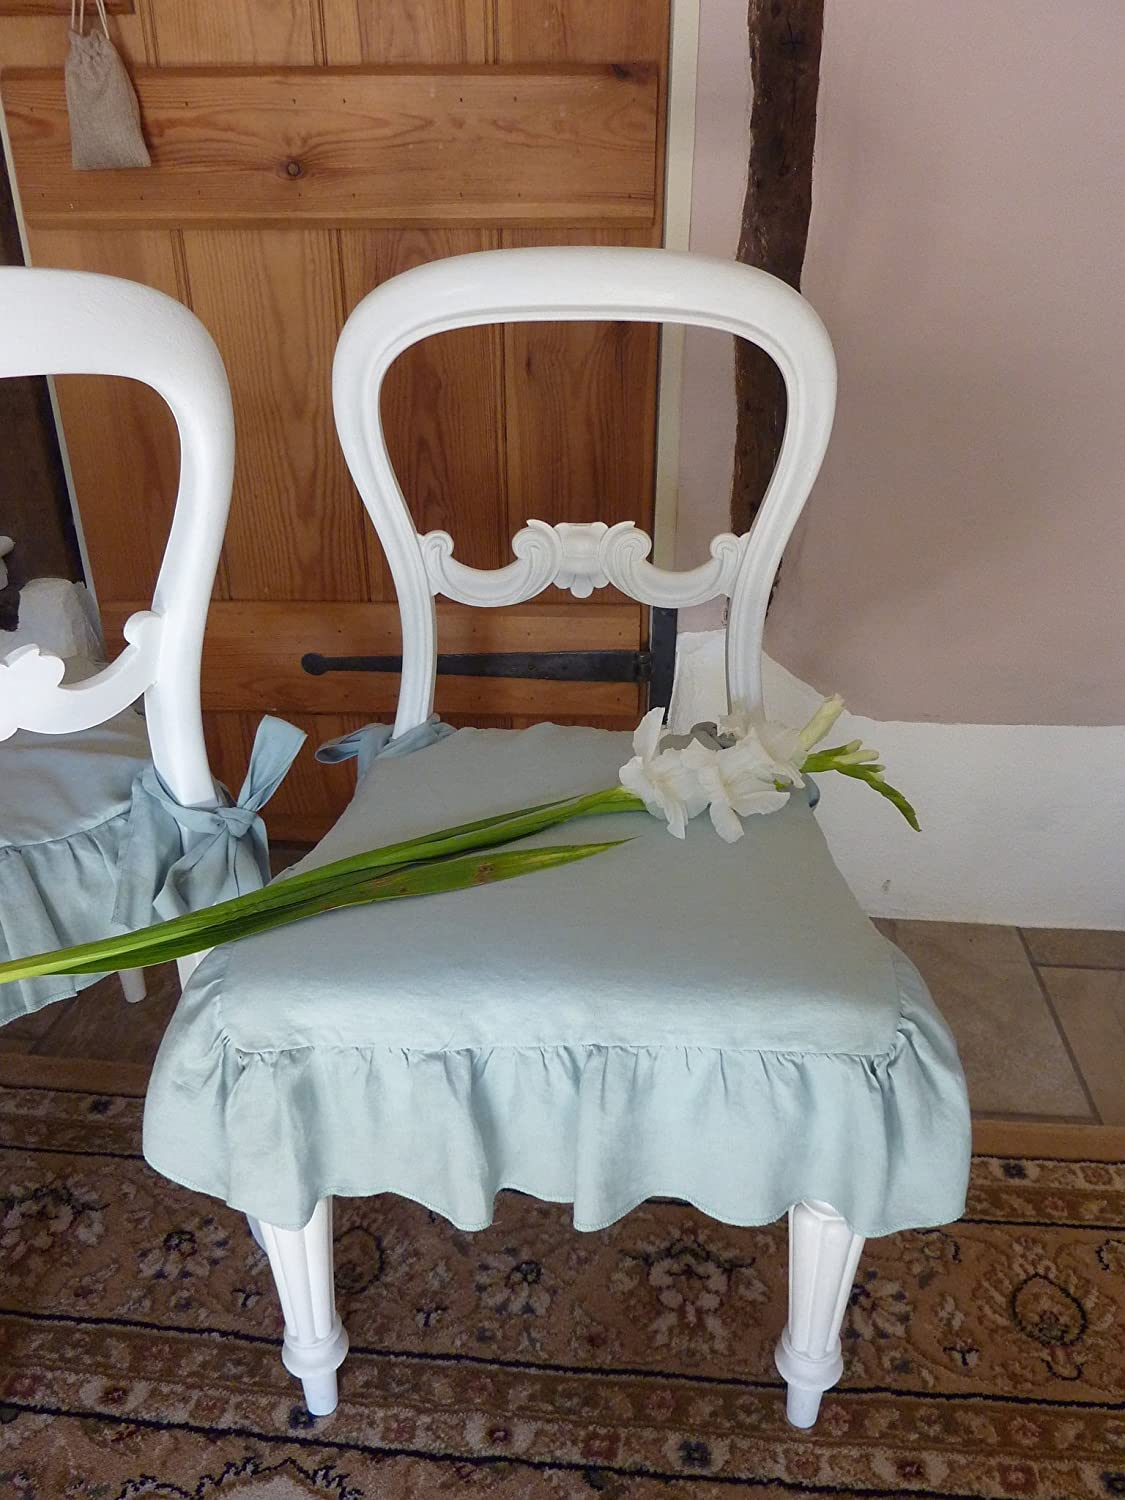 Amazon.com: Seat Cover, Linen Chair Cover, Ruffled Chair Cover, Linen Slip  Cover, Farmhouse Decor. Shabby Chic: Handmade